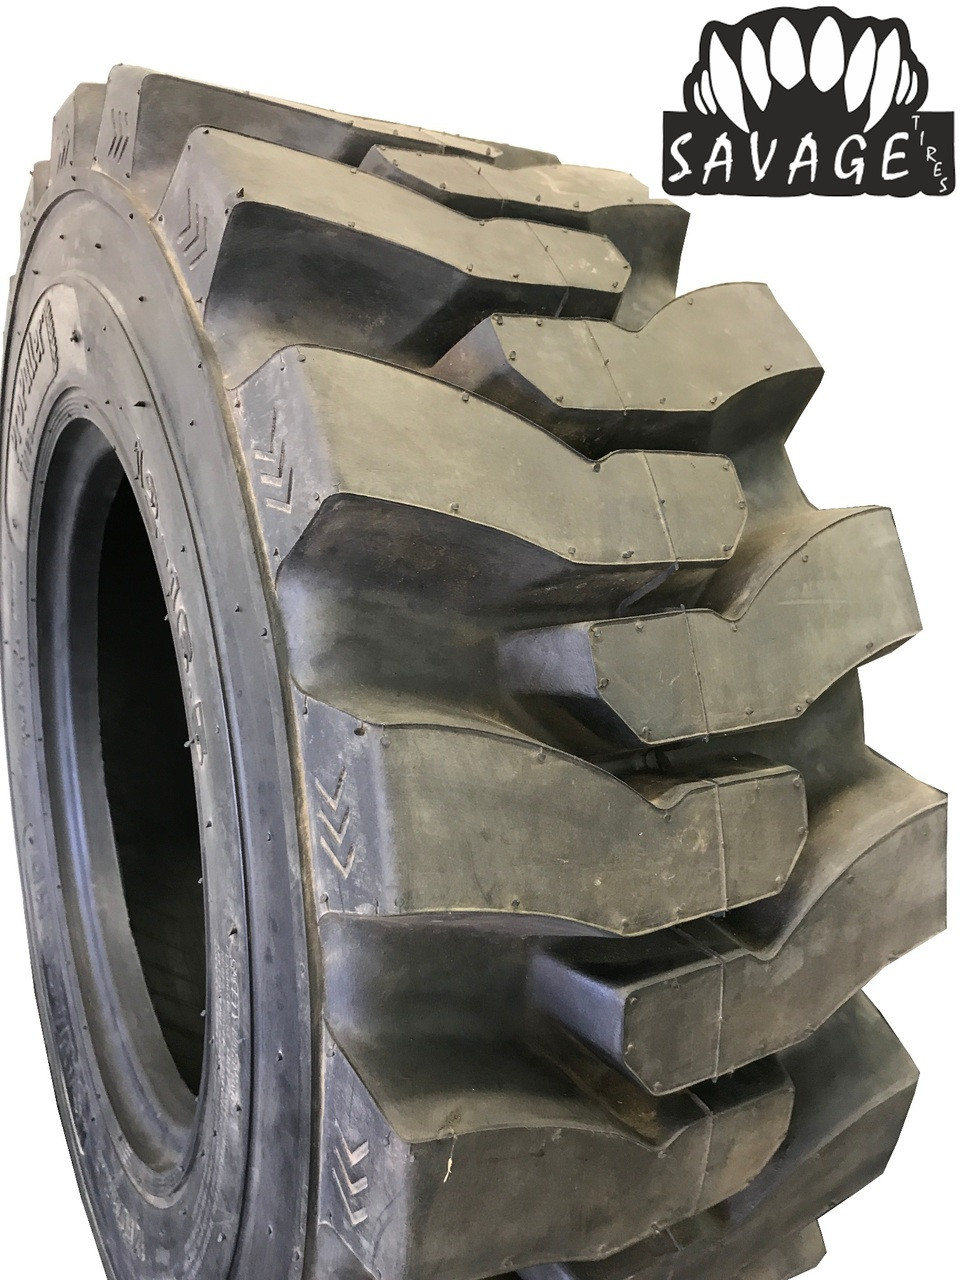 New Tire 12 16 5 Savage Hd Premium Skid Steer 12 Ply Deeptread 12x16 5 Ppt Your Next Tire